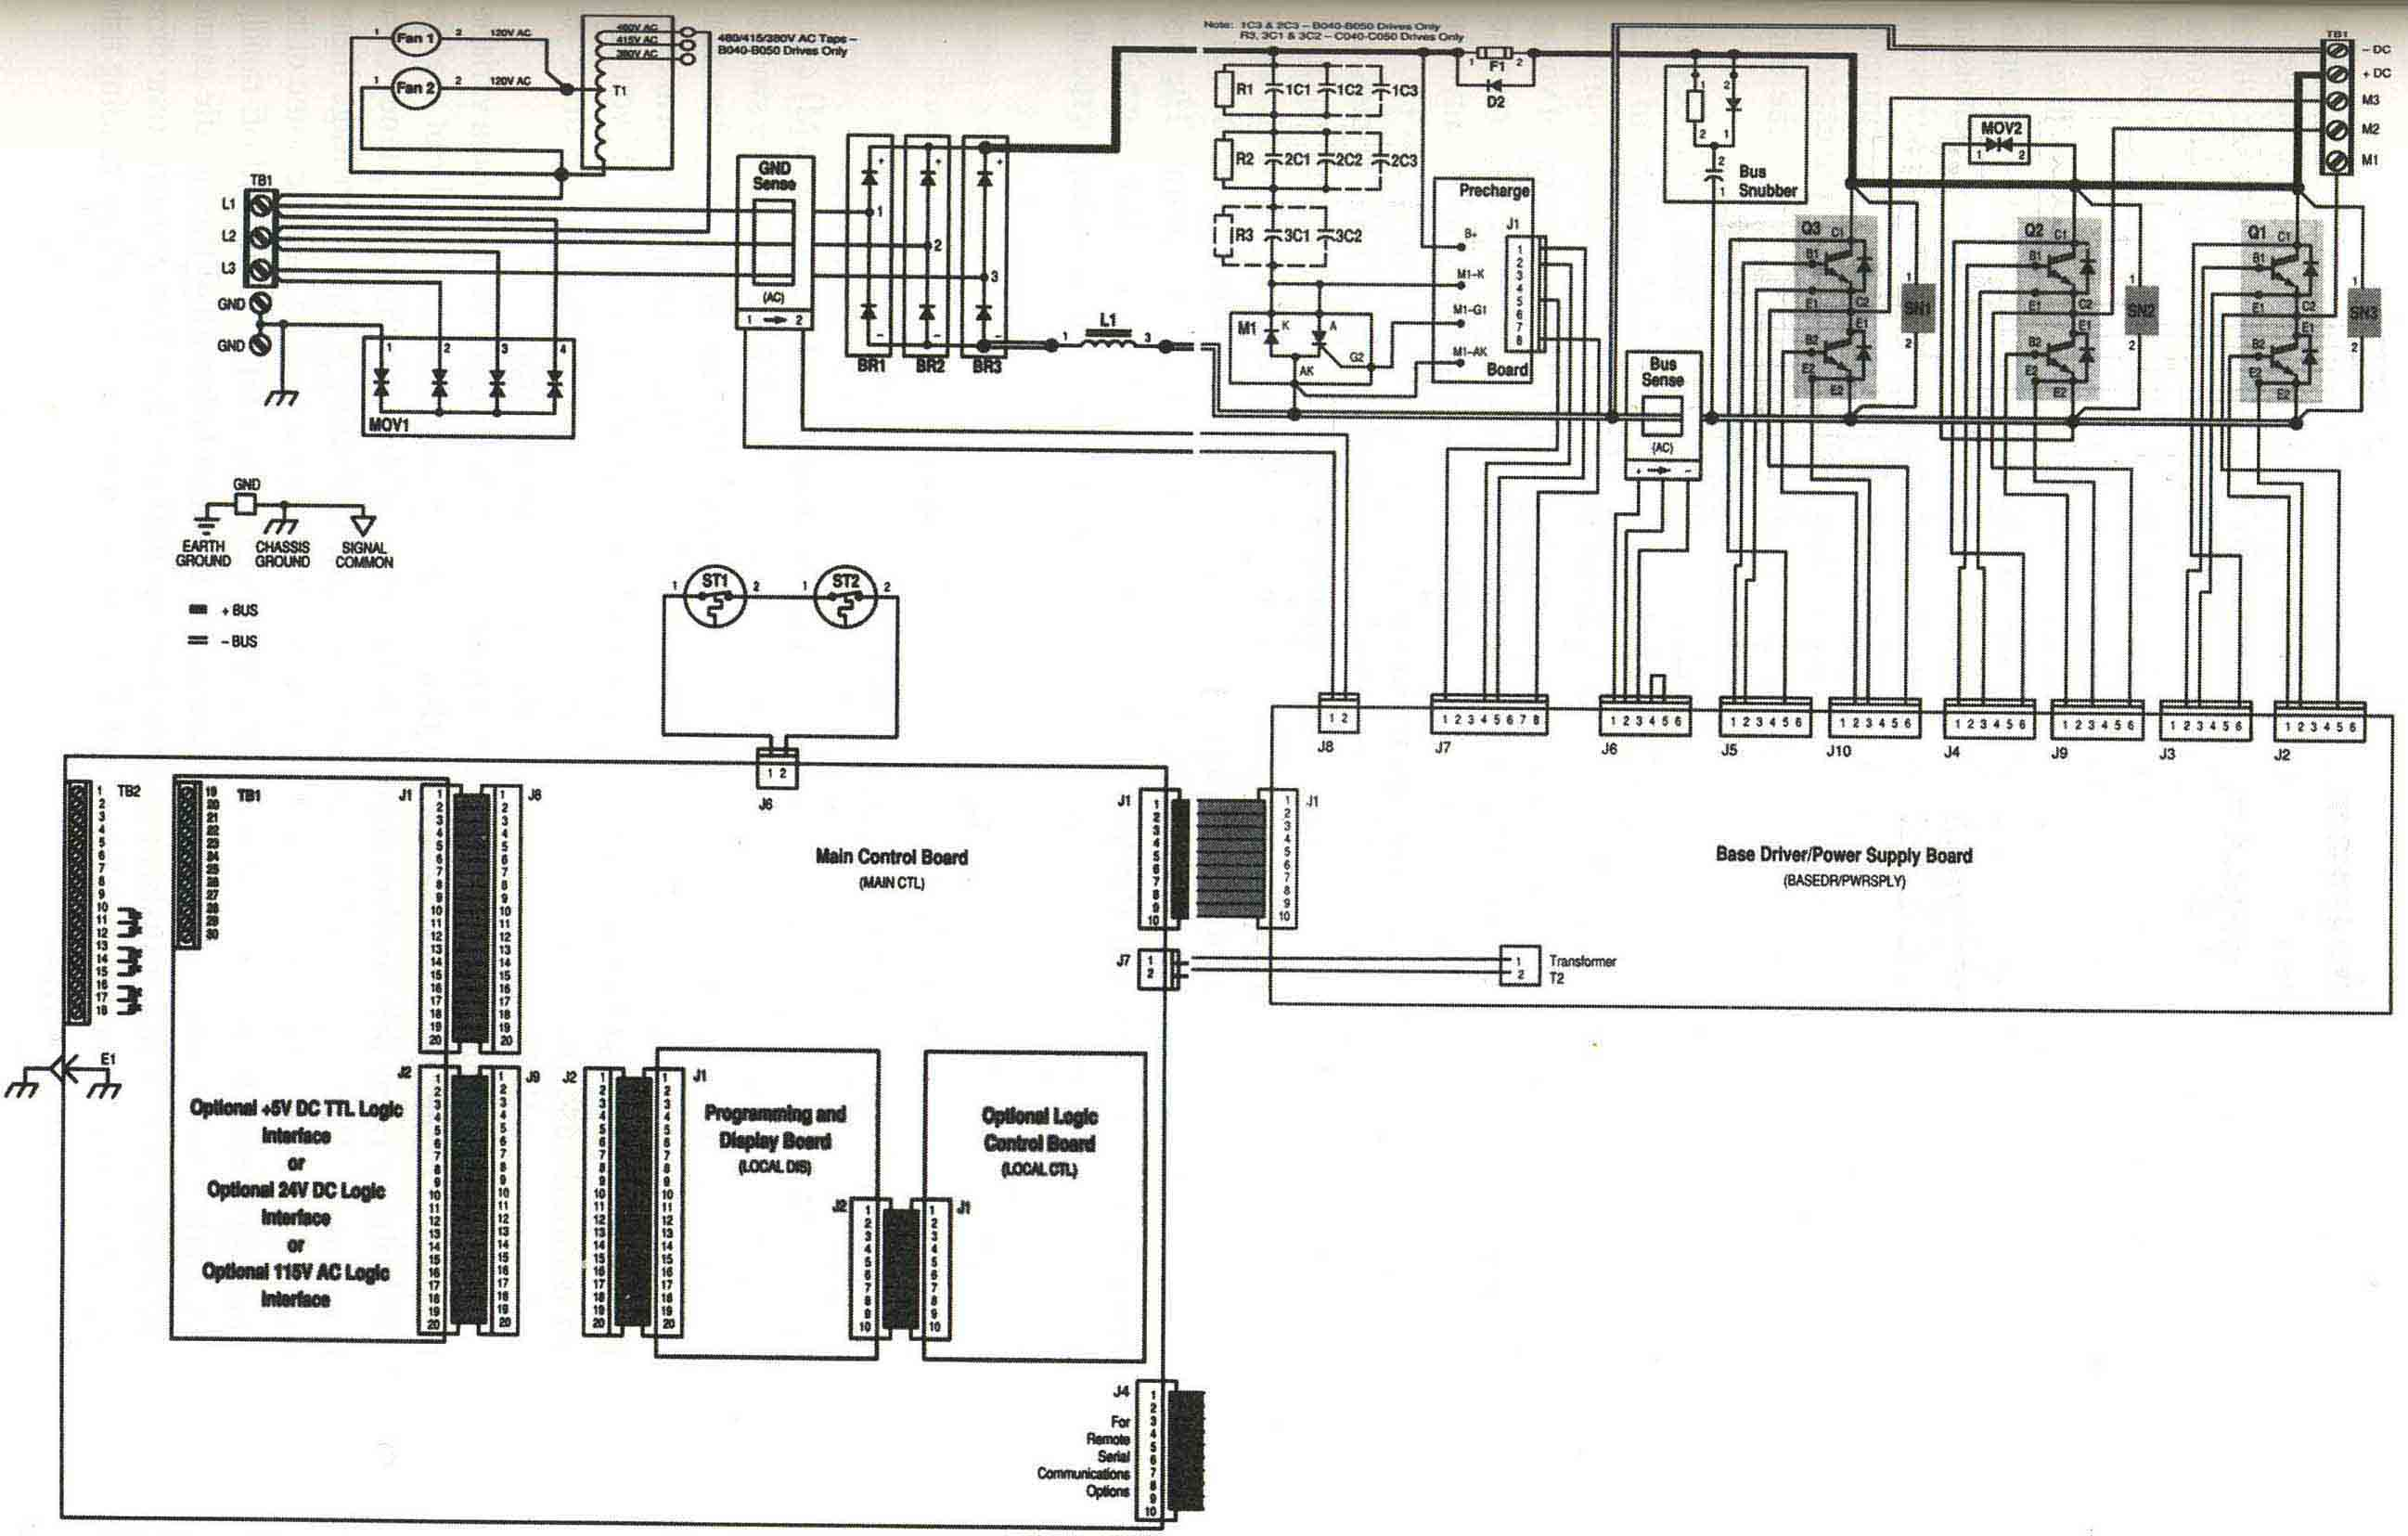 Allen Bradley 1336 schematic solid state circuits for variable frequency drives vfd control wiring diagram at nearapp.co